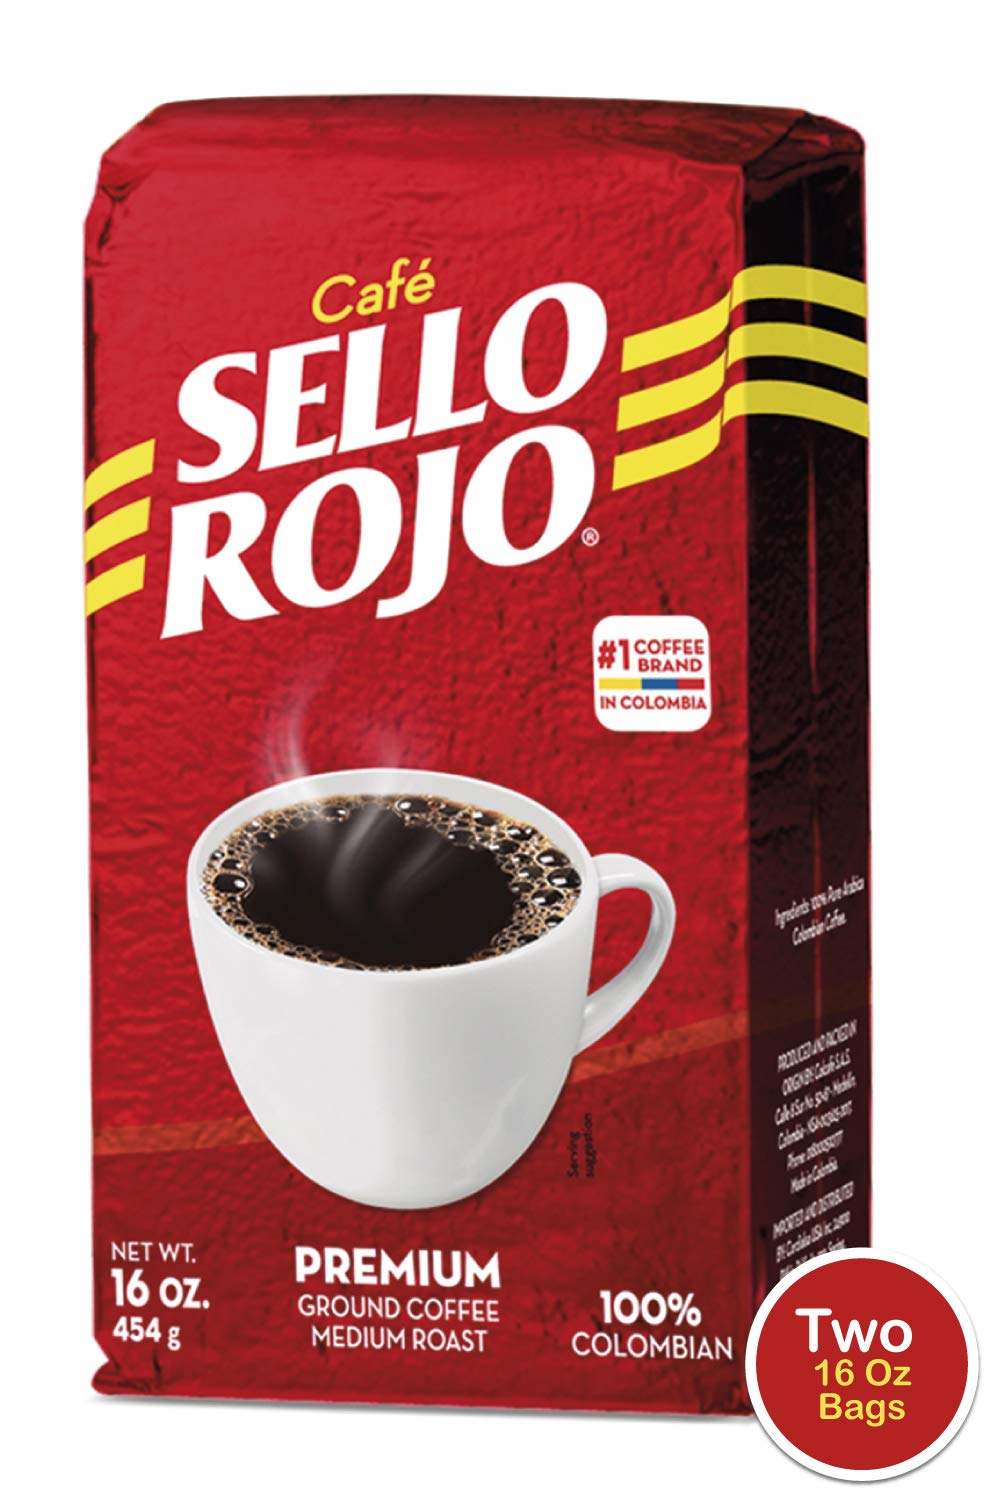 Café Sello Rojo Premium Colombian Coffee | Smooth & Flavorful | Low Acidity, No Bitter Aftertaste | 100% Colombian Medium Roast Ground Coffee | Café de Colombia | 16 Ounce (Pack of 2)